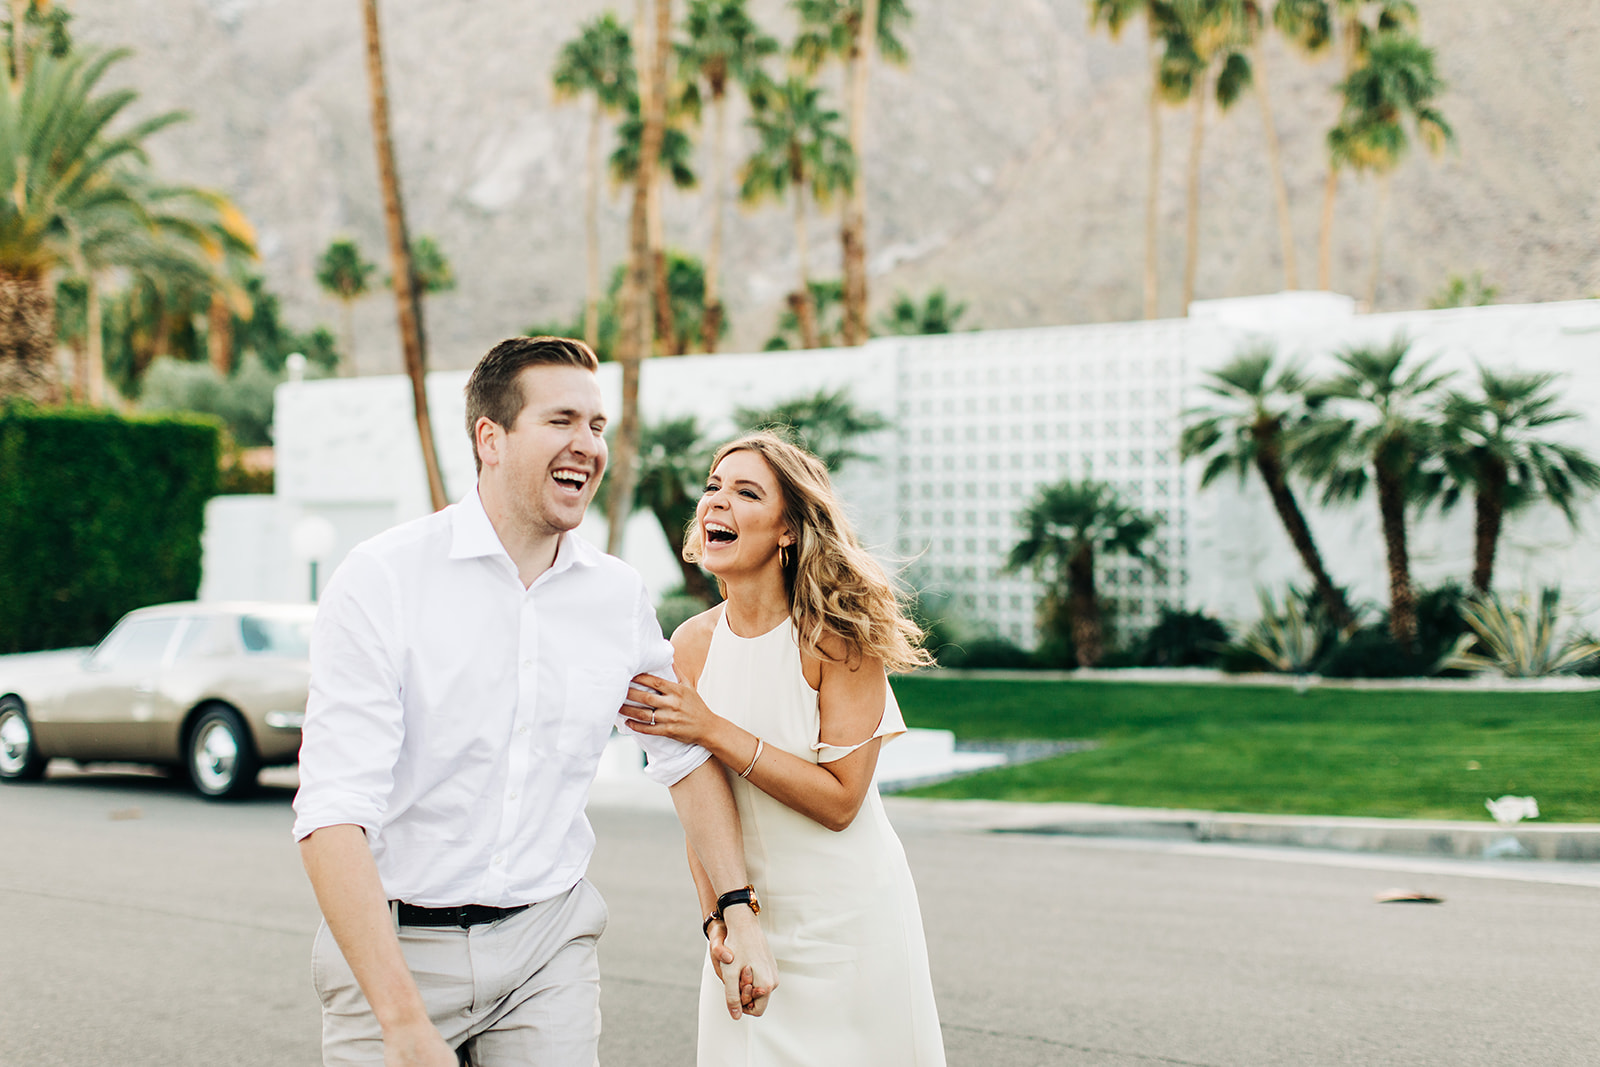 Paulina-Drew_Palm-Springs-Engagement-Photos_Clarisse-Rae_Southern-California-Wedding-Photographer28.jpg